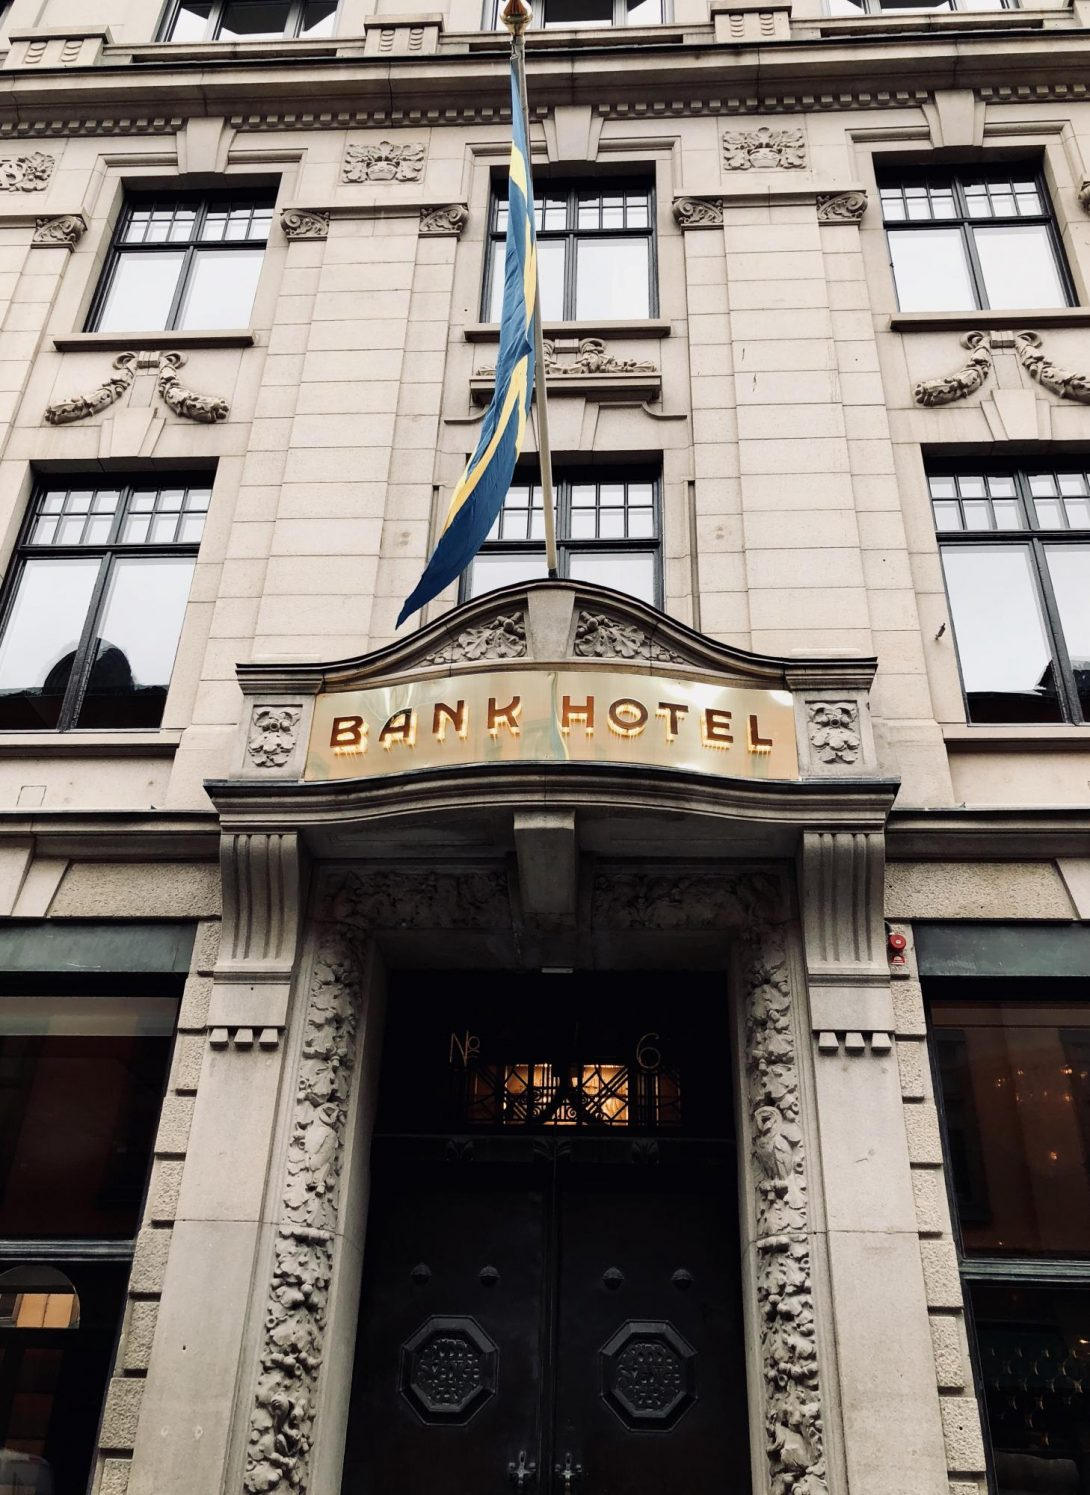 Bank hotell